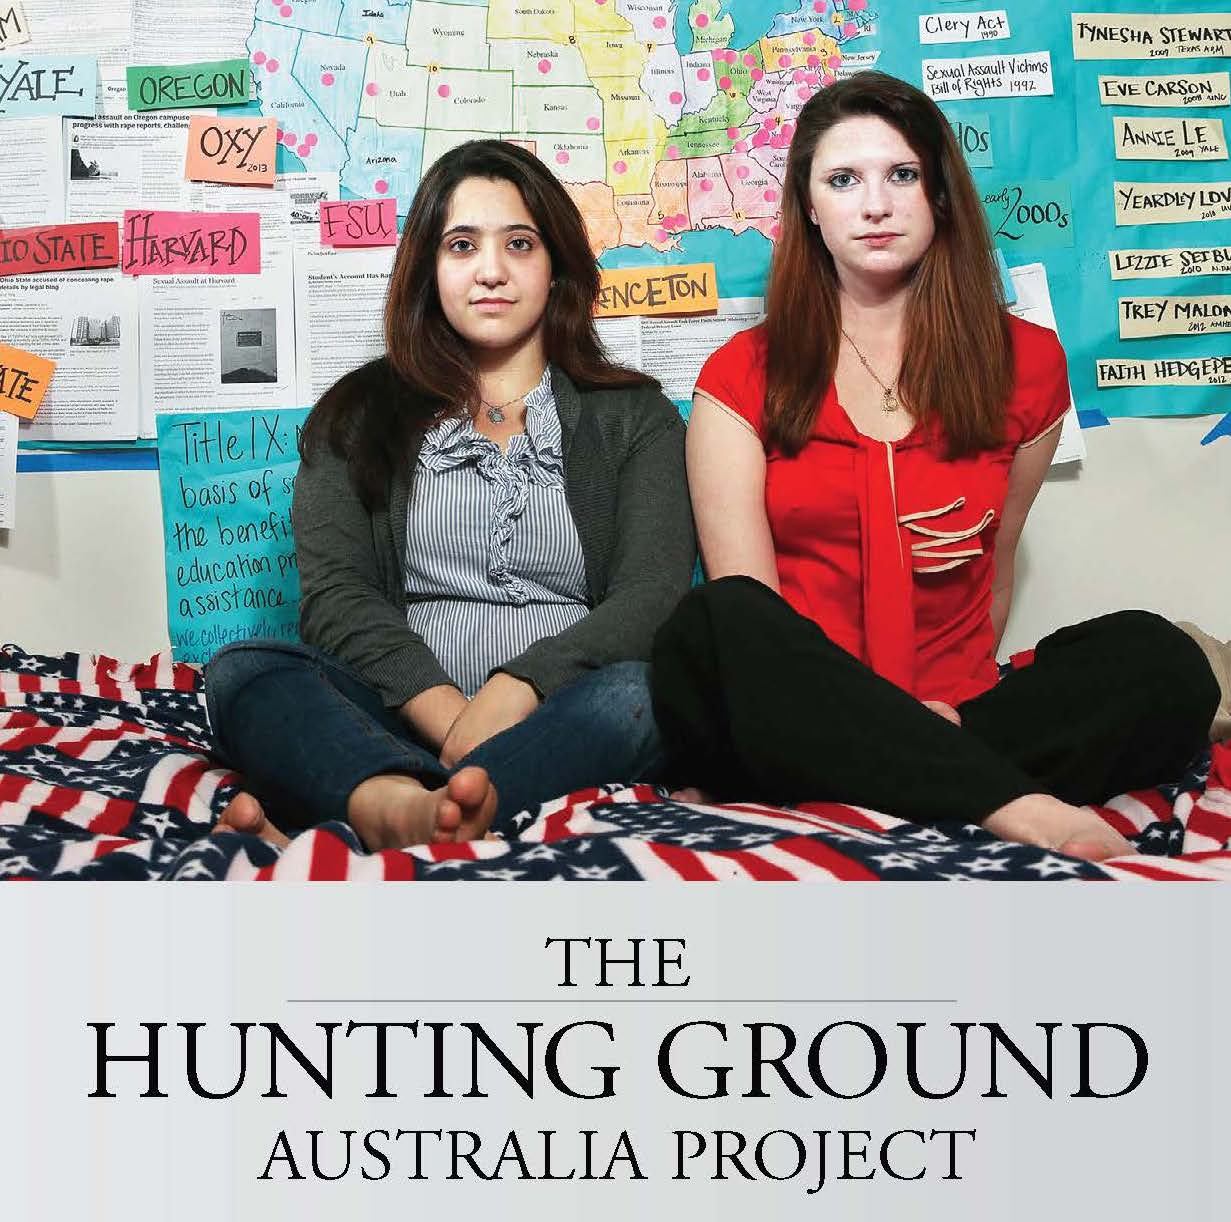 The Hunting Ground Australia Project - Millwood Consulting